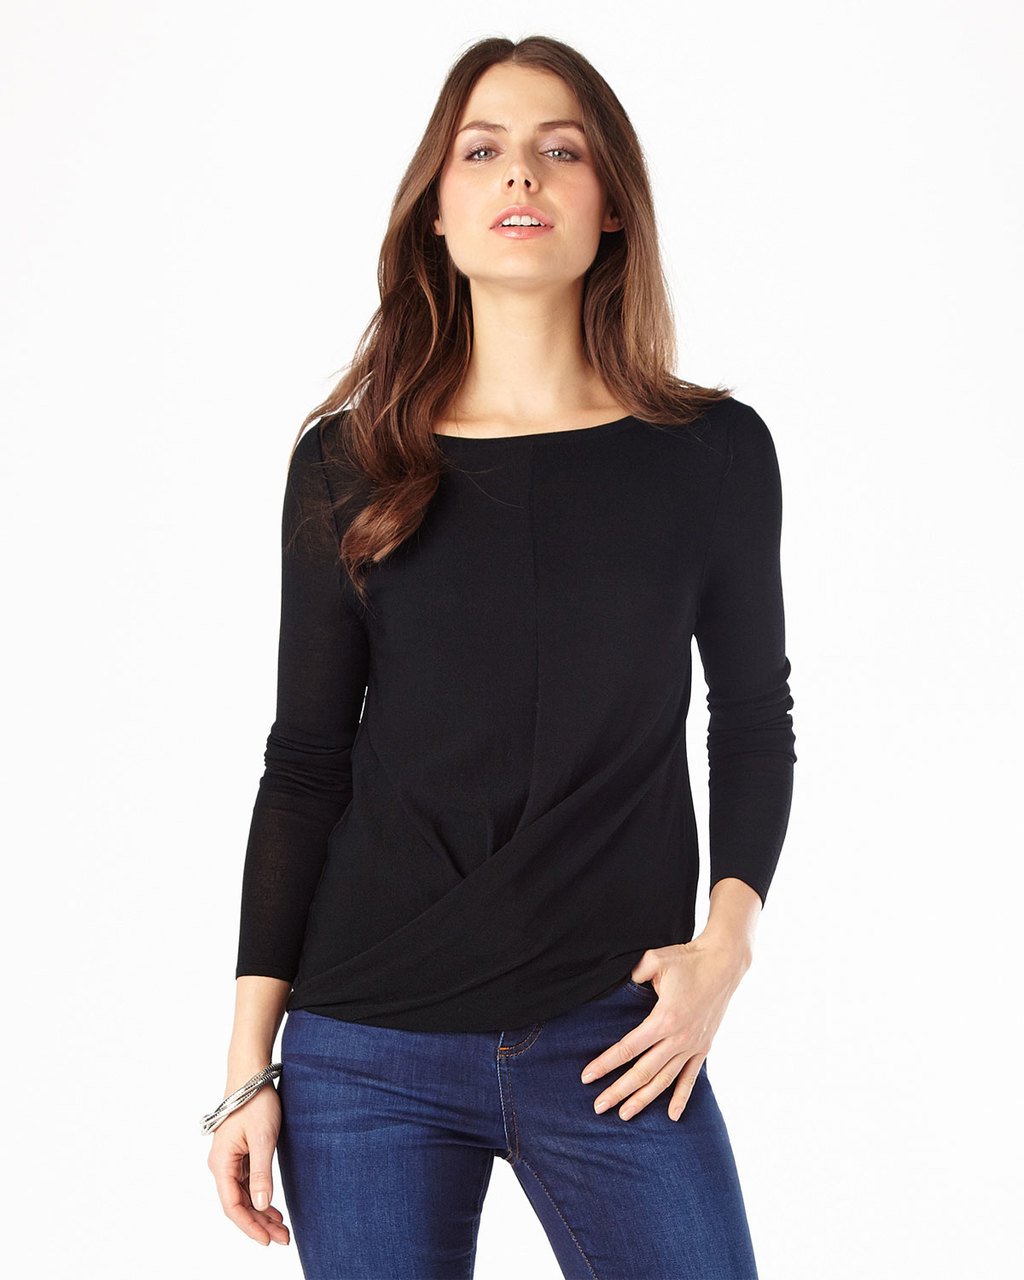 Gretchen Twist Knit Top - neckline: round neck; pattern: plain; waist detail: twist front waist detail/nipped in at waist on one side/soft pleats/draping/ruching/gathering waist detail; predominant colour: black; occasions: casual; length: standard; style: top; fit: body skimming; sleeve length: 3/4 length; sleeve style: standard; texture group: knits/crochet; pattern type: fabric; fibres: viscose/rayon - mix; season: s/s 2016